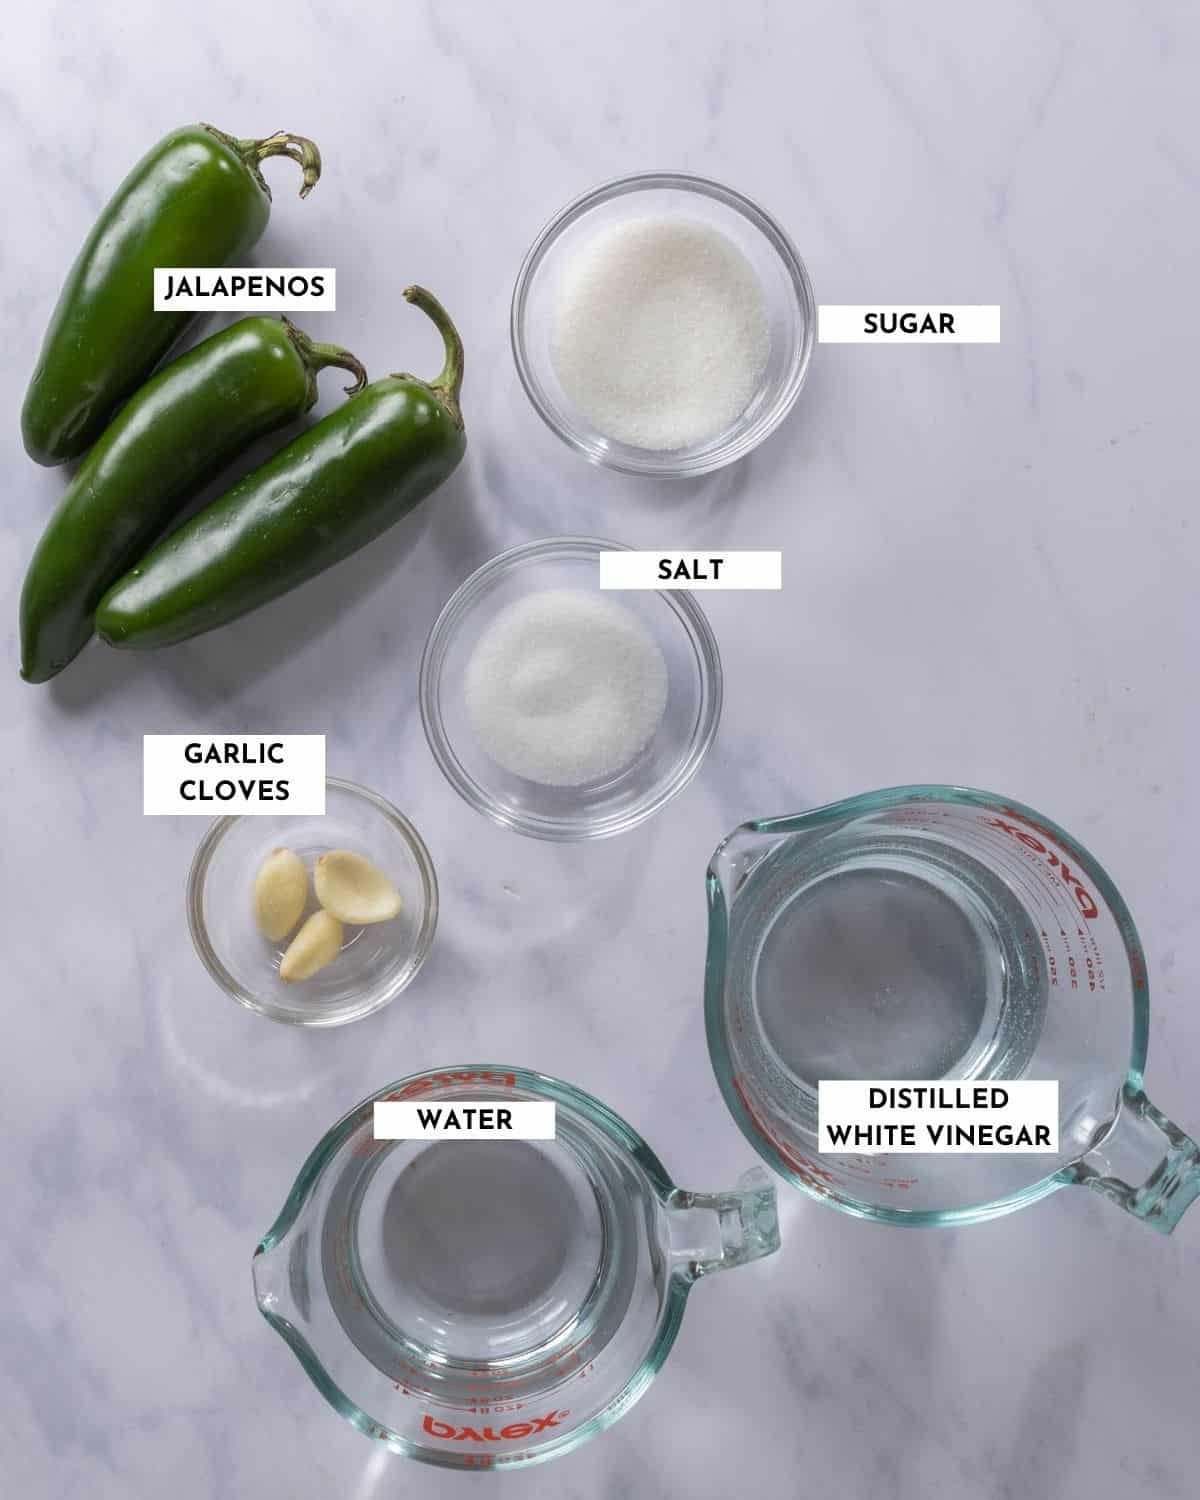 Labeled ingredients for jalapeno pickles - details in recipe card